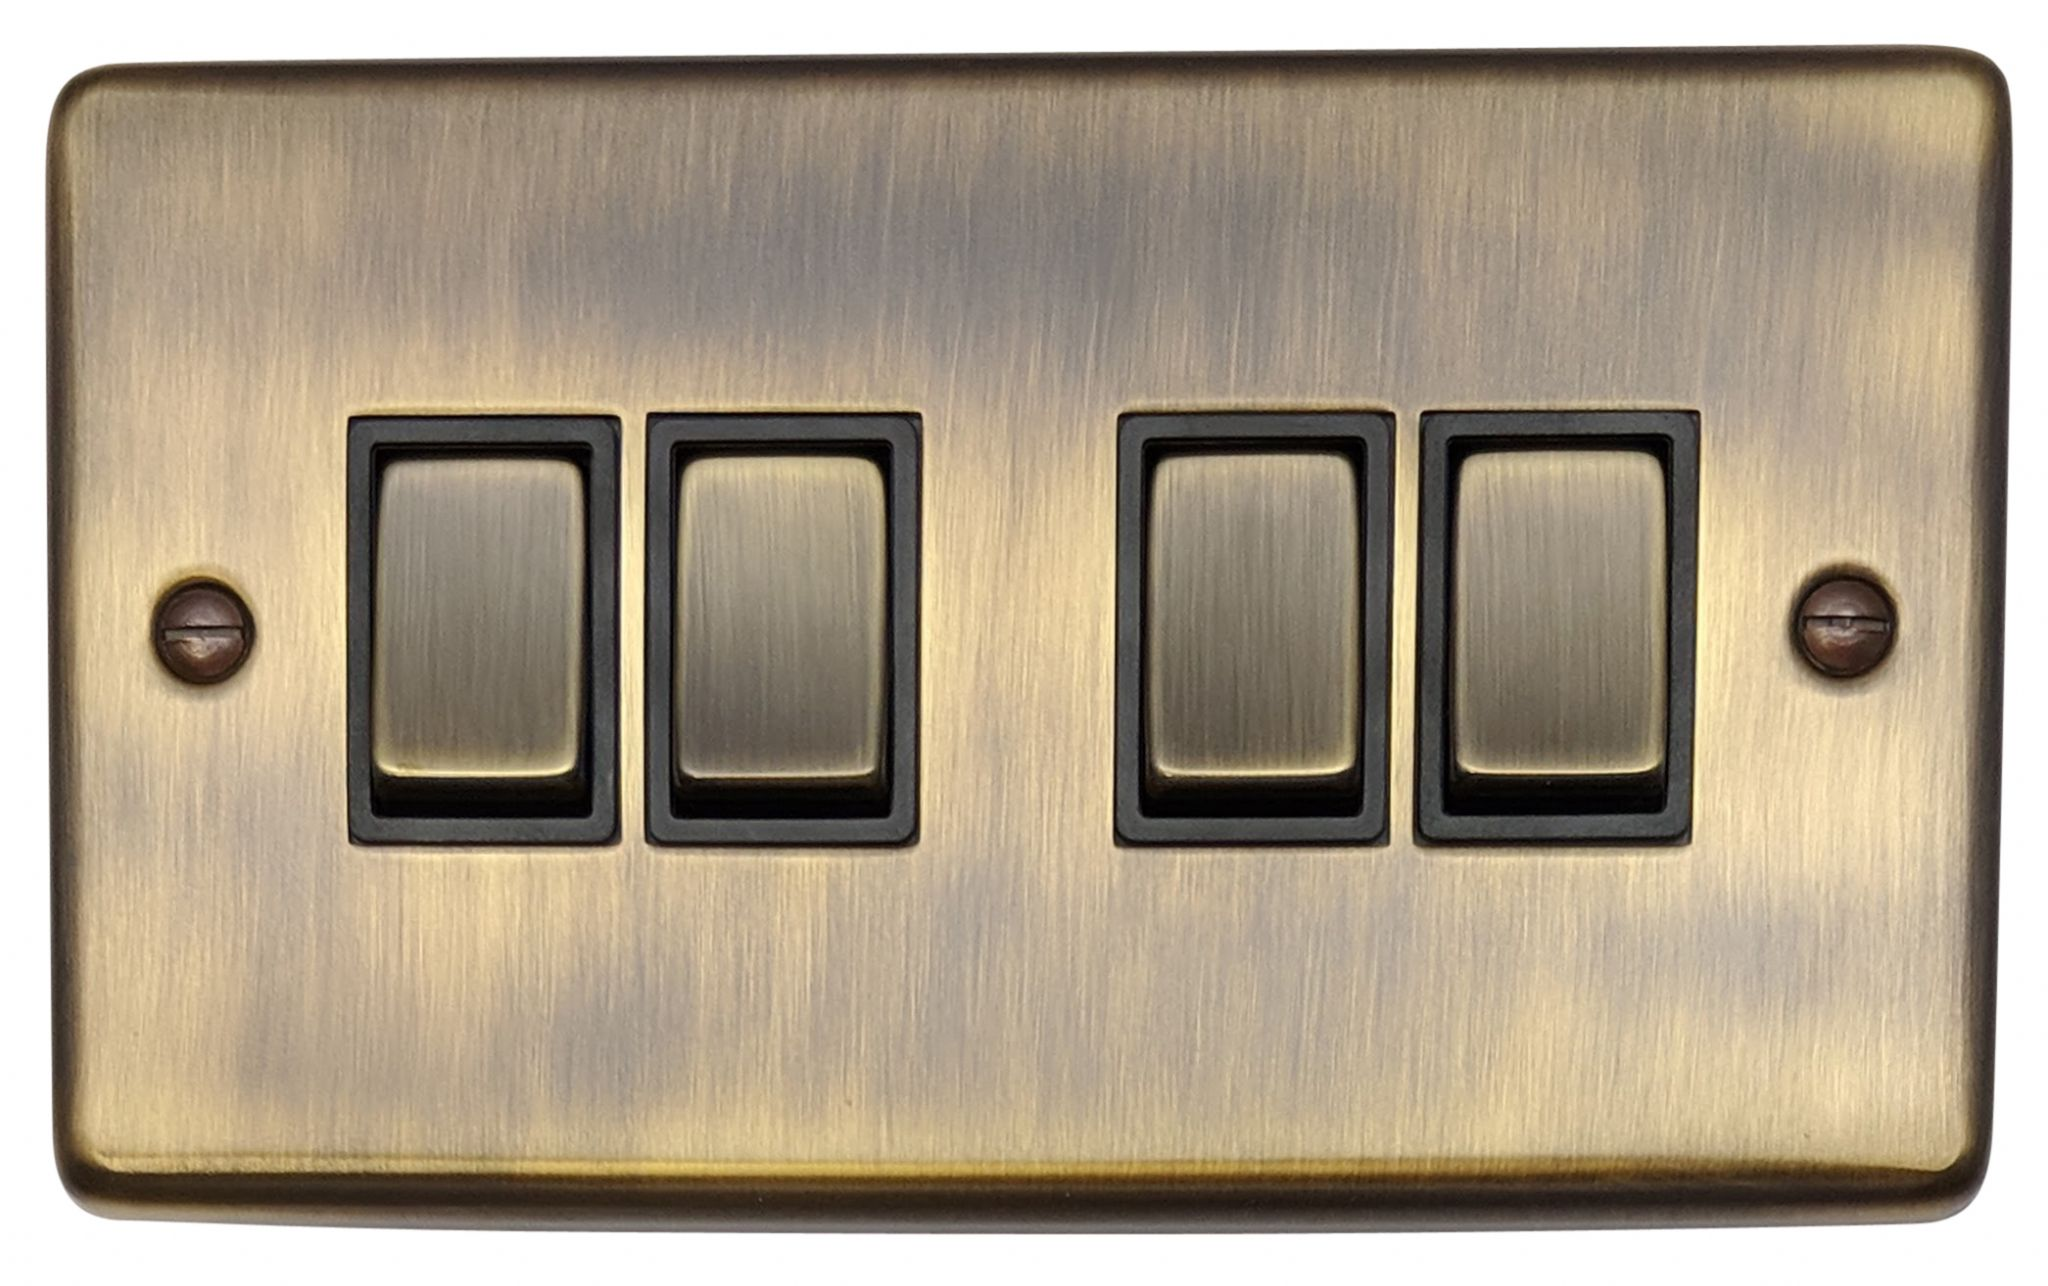 Gh Cab304 Standard Plate Antique Bronze 4 Gang 1 Or 2 Way Rocker Light Switch